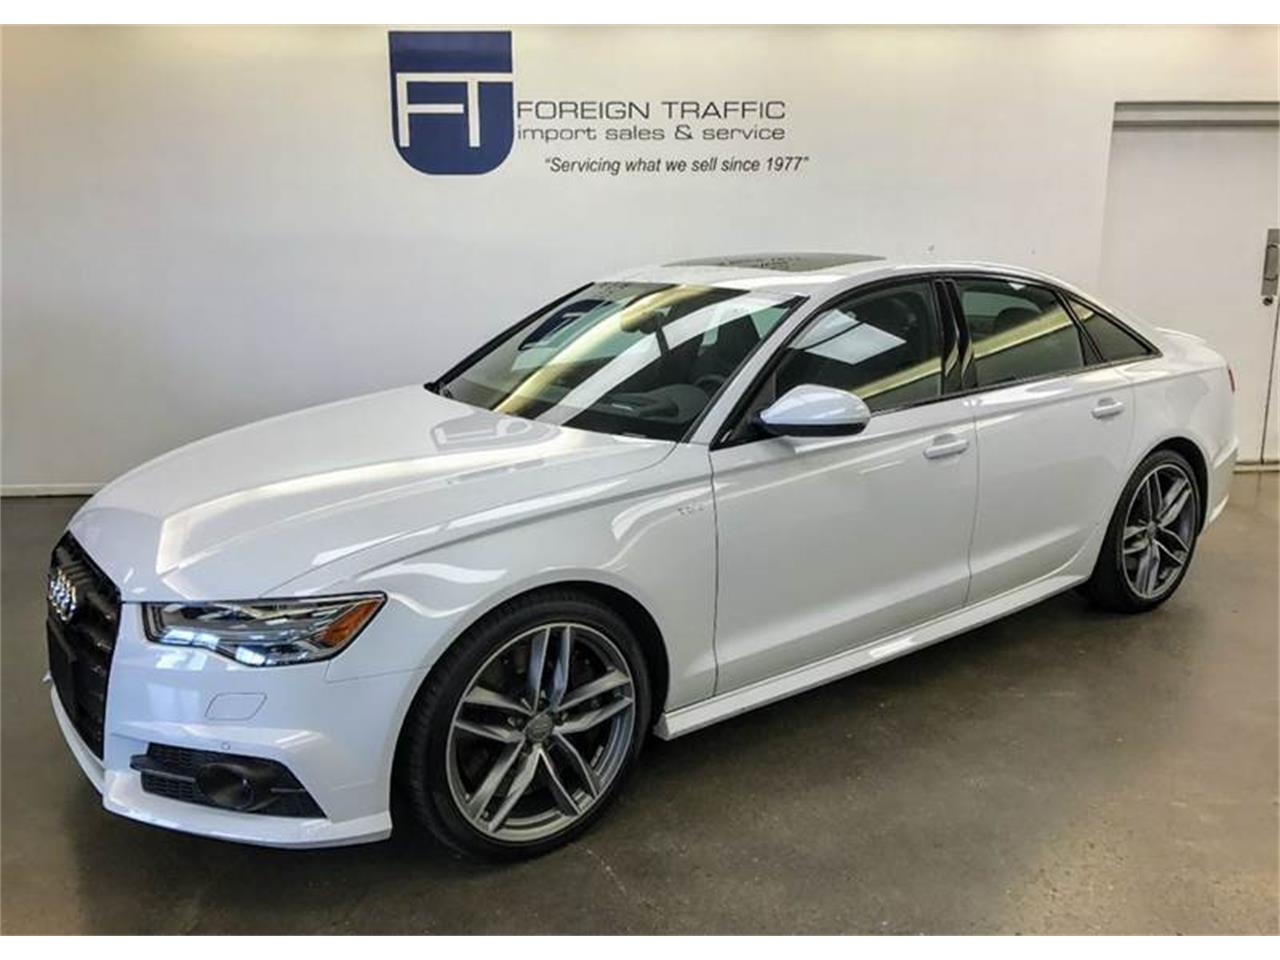 Large Picture of 2016 Audi S6 located in Allison Park Pennsylvania Offered by Foreign Traffic Import Sales & Service - L5SV